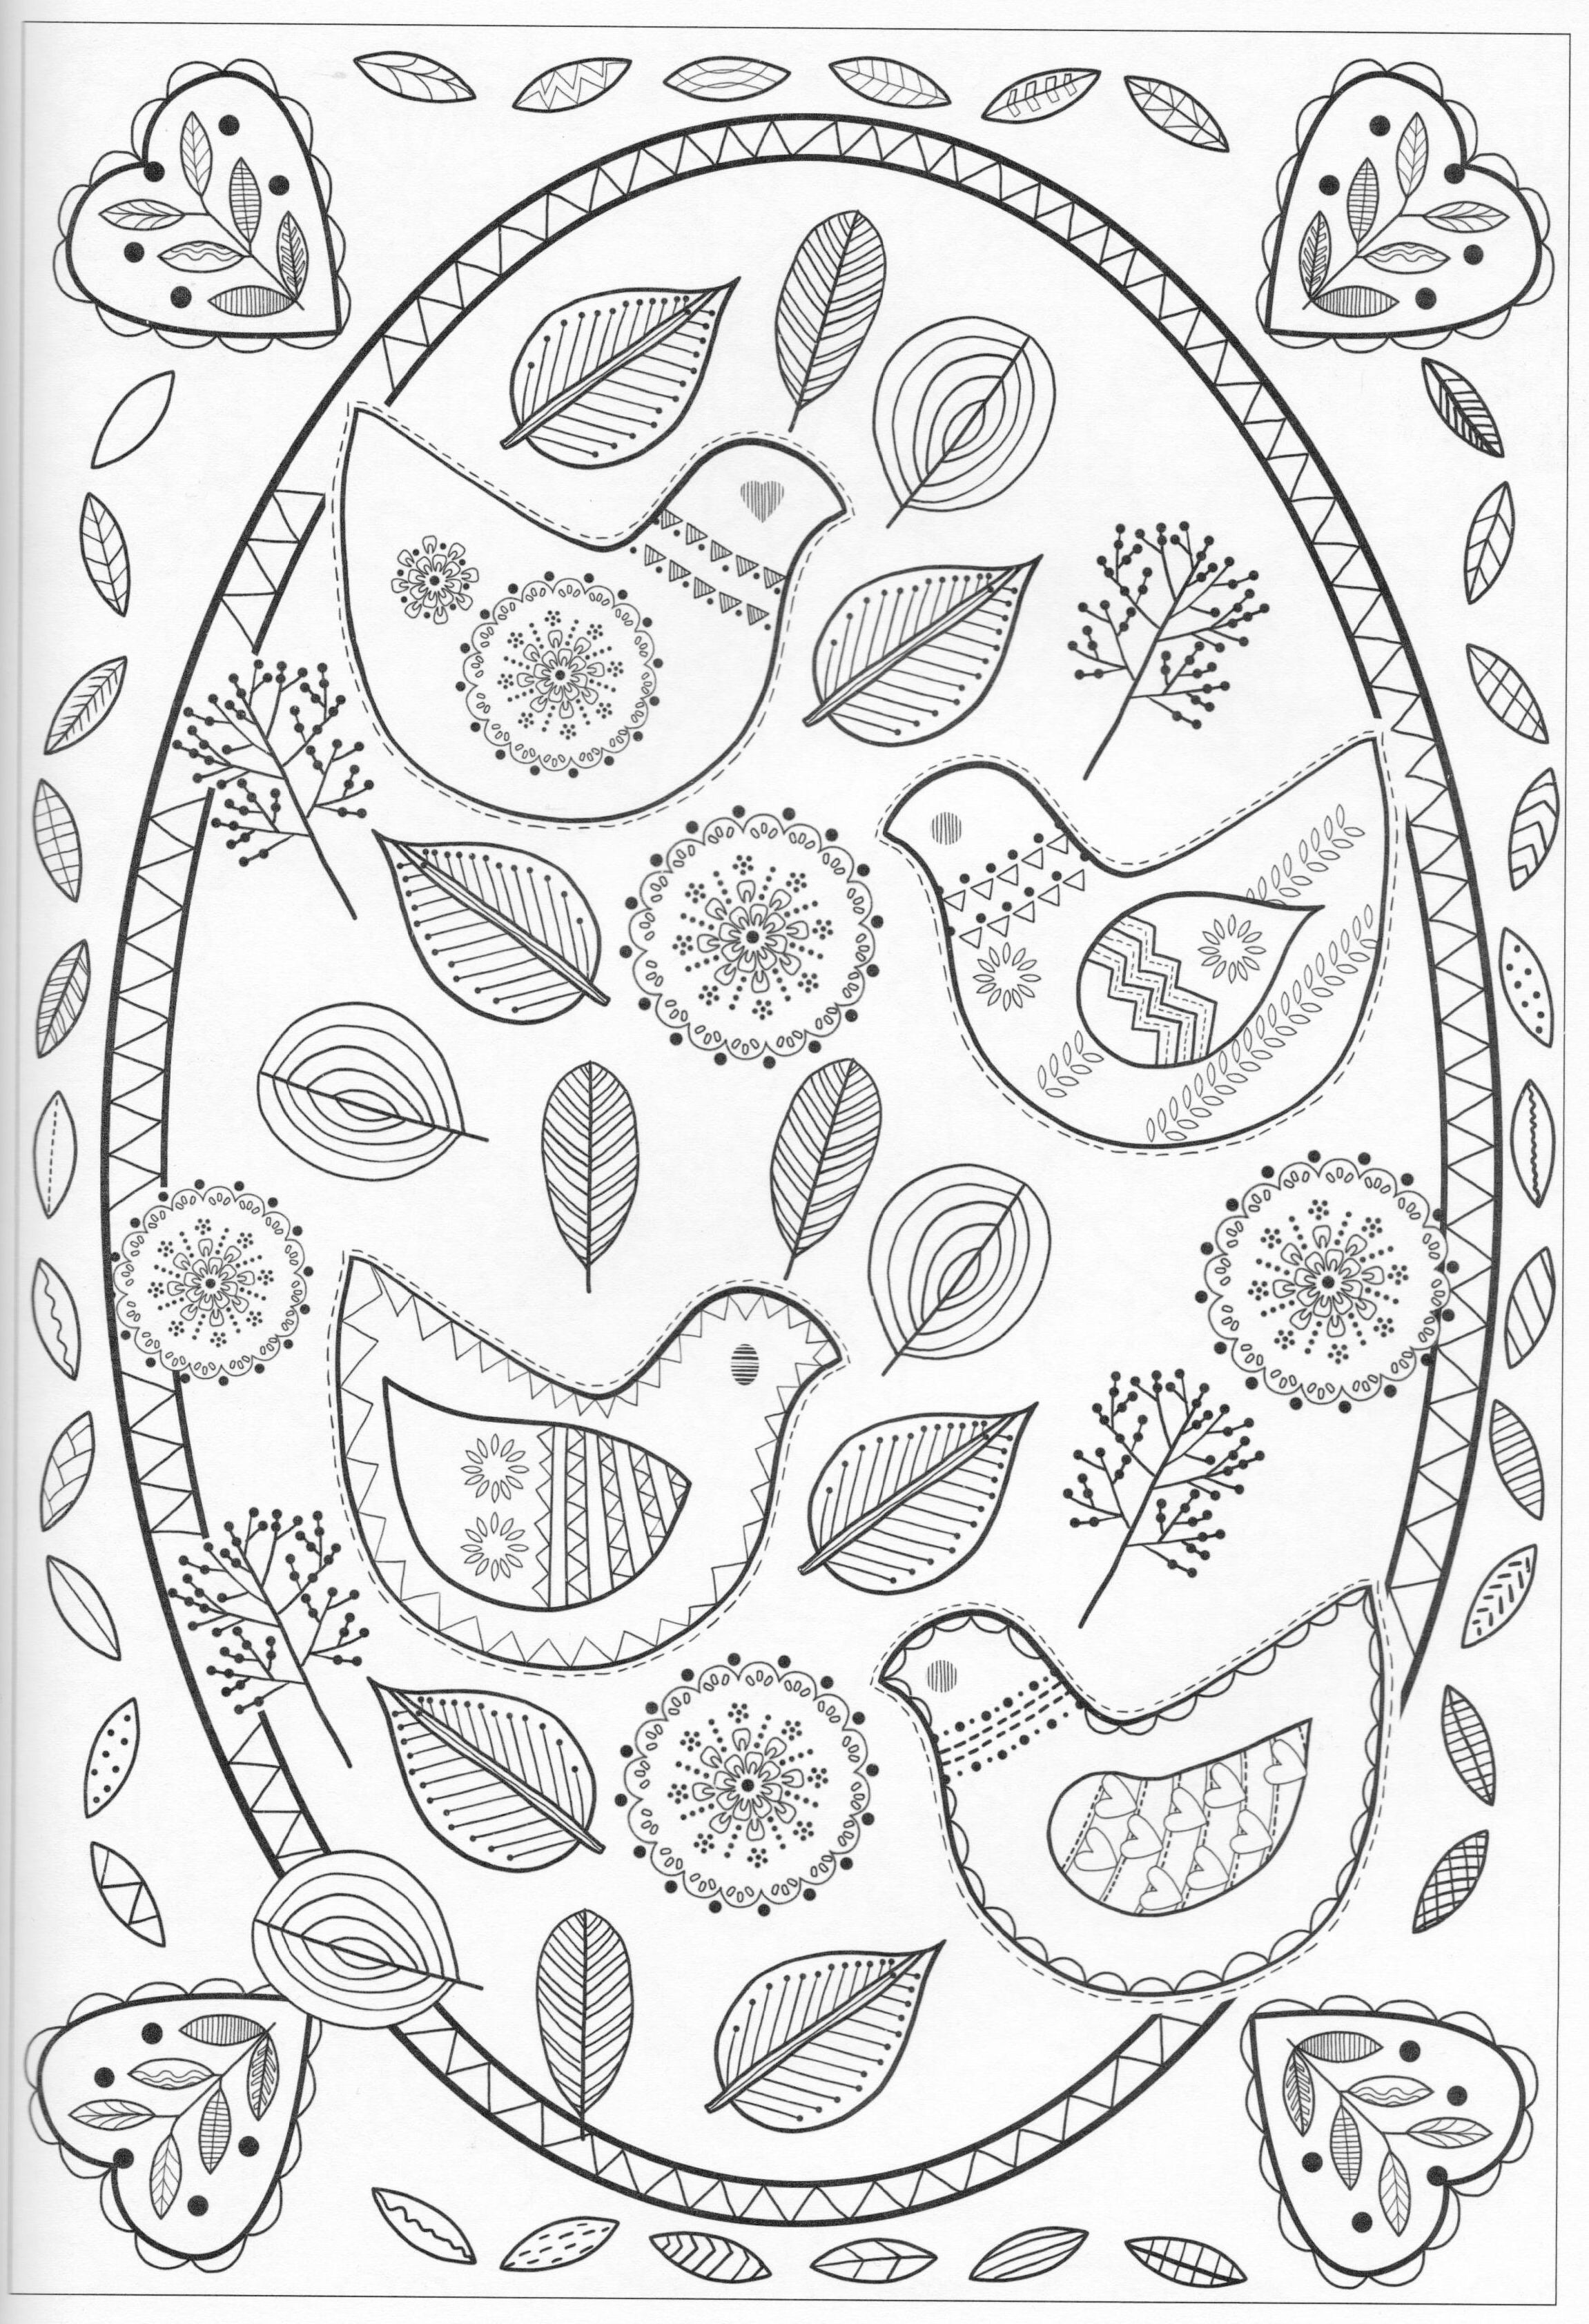 24 Elegant Picture Of Coloring Pages You Can Color On The Computer Davemelillo Com Mandala Coloring Pages Bird Coloring Pages Free Coloring Pages